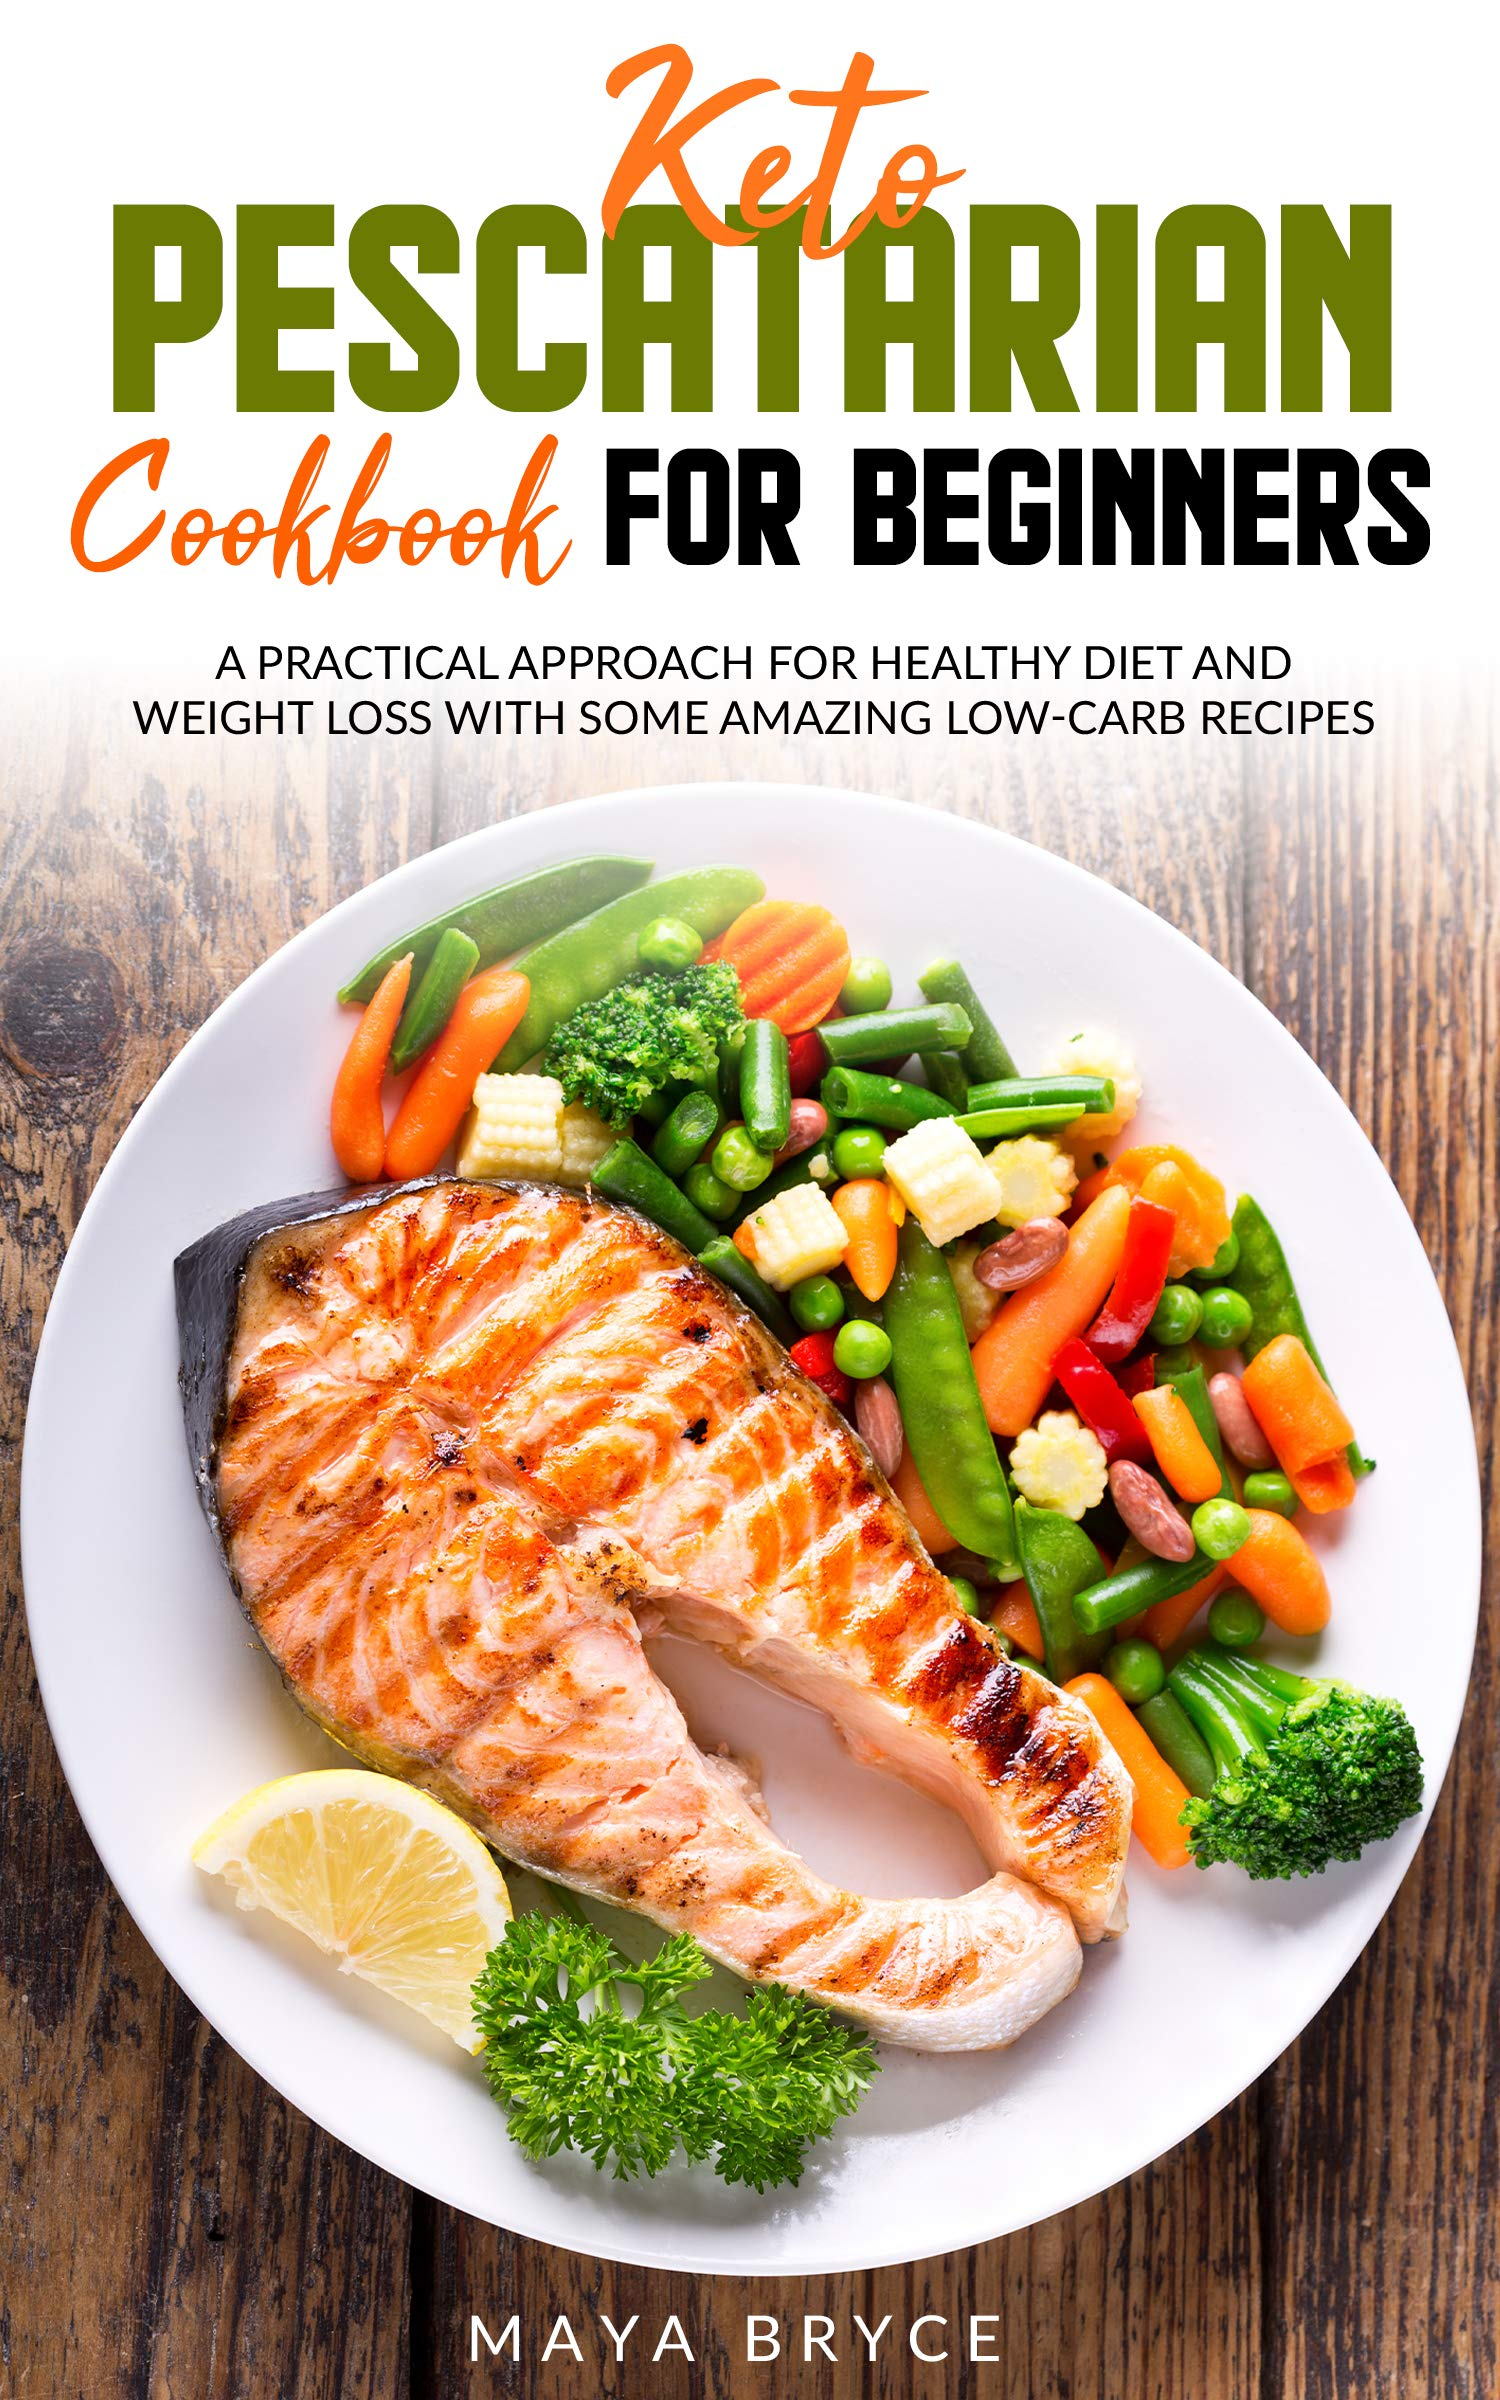 KETO PESCATARIAN COOKBOOK FOR BEGINNERS: A PRACTICAL APPROACH FOR HEALTHY DIET AND WEIGHT LOSS WITH SOME AMAZING LOW-CARB RECIPES